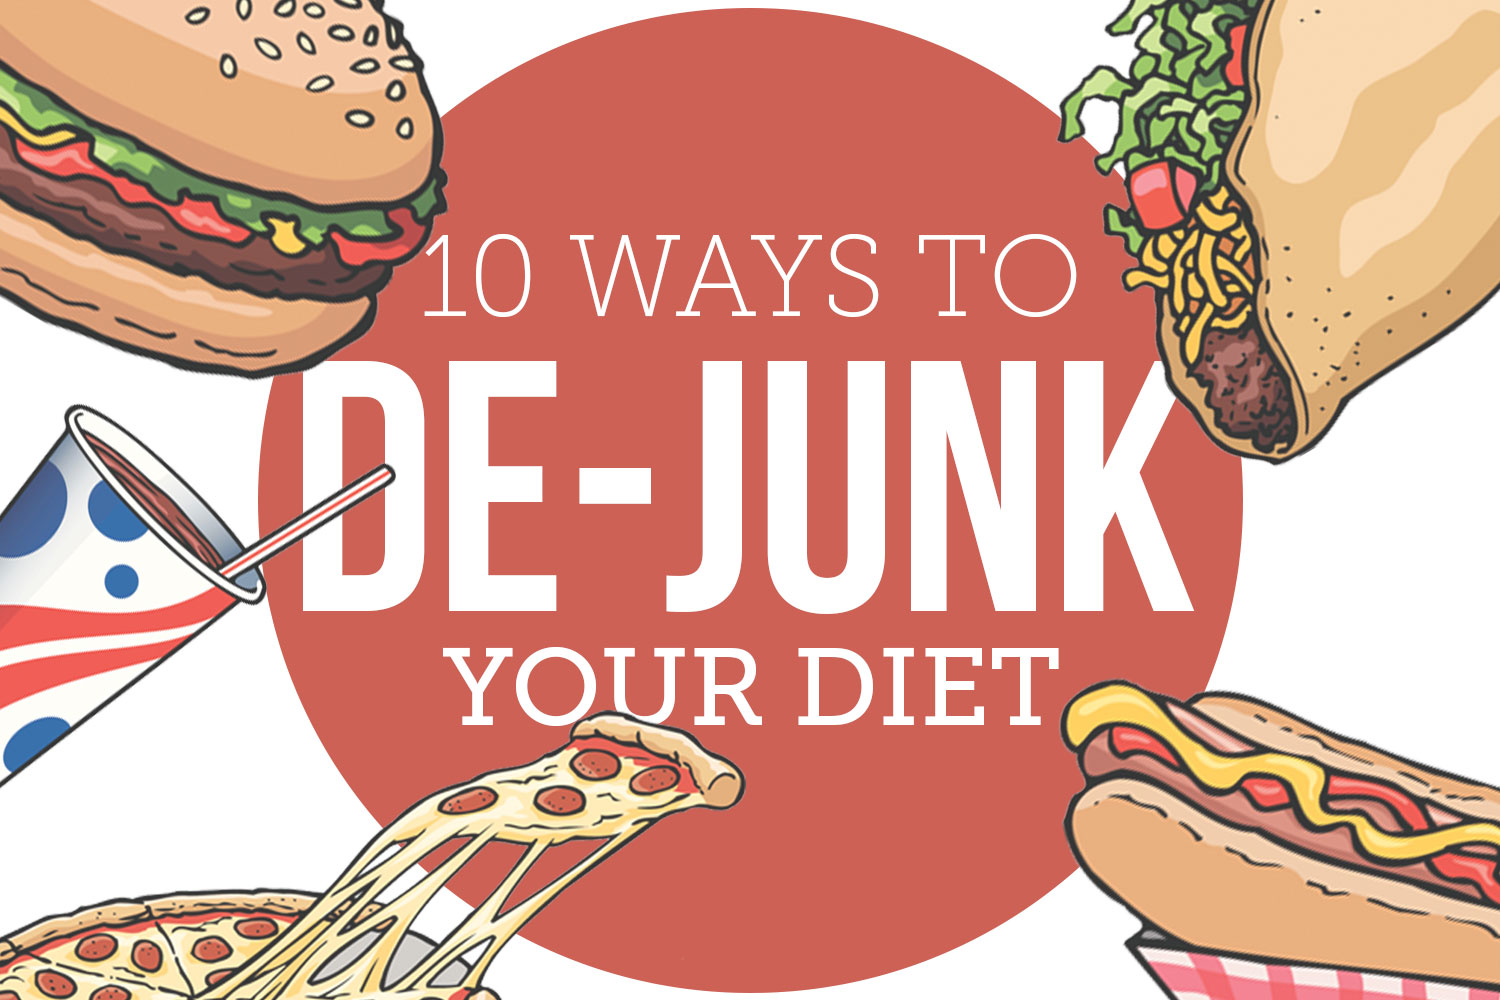 benefits of eating homemade meals com 10 ways to de junk your diet